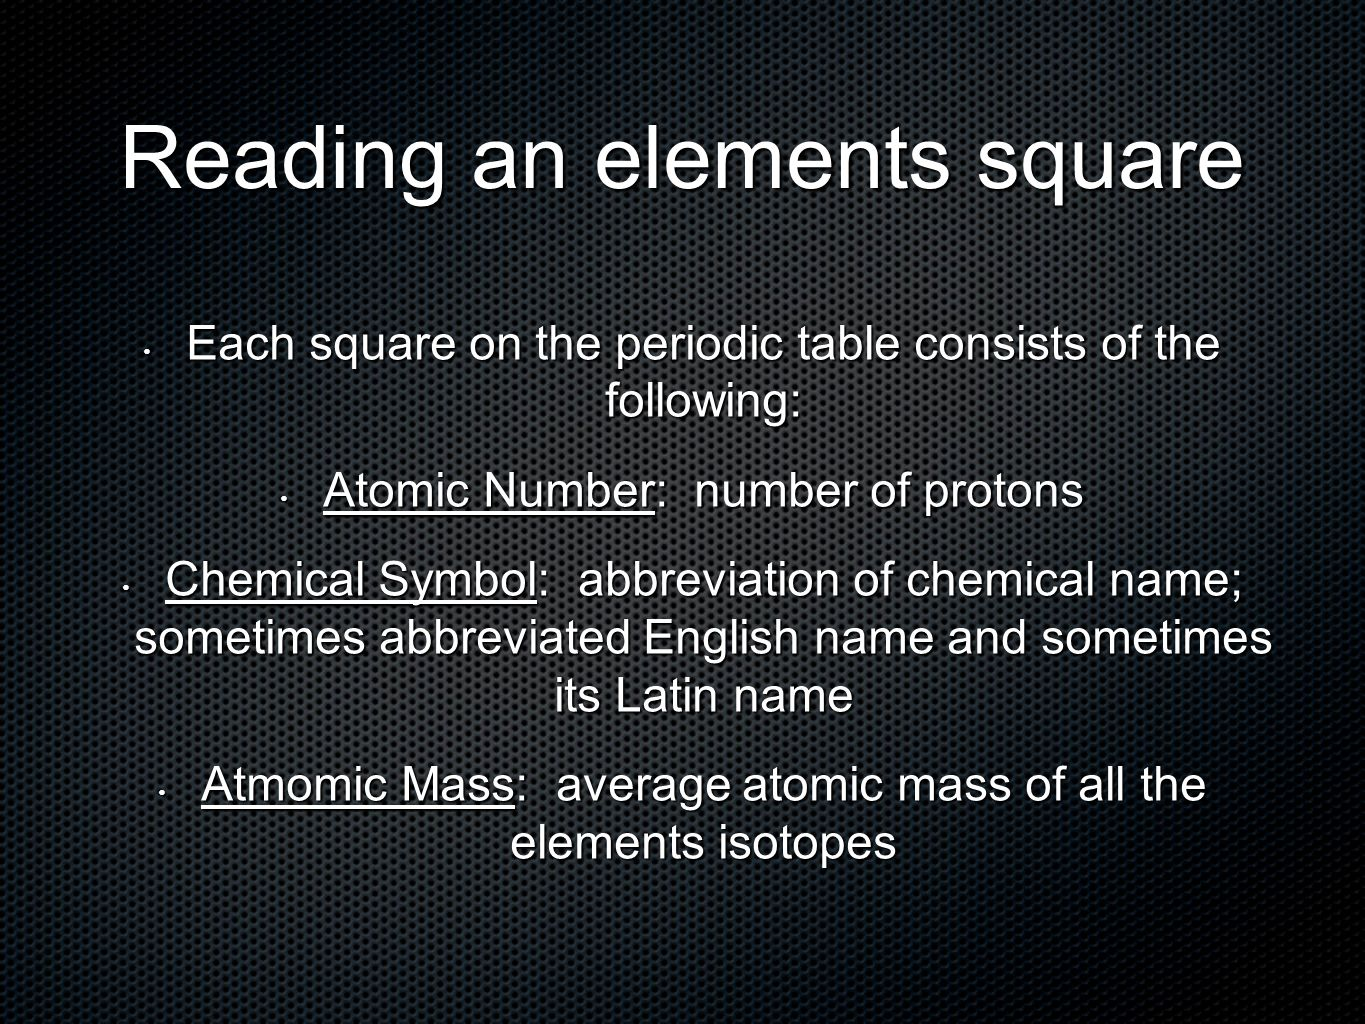 Elements and the periodic table introduction to atoms ppt download 25 reading urtaz Image collections